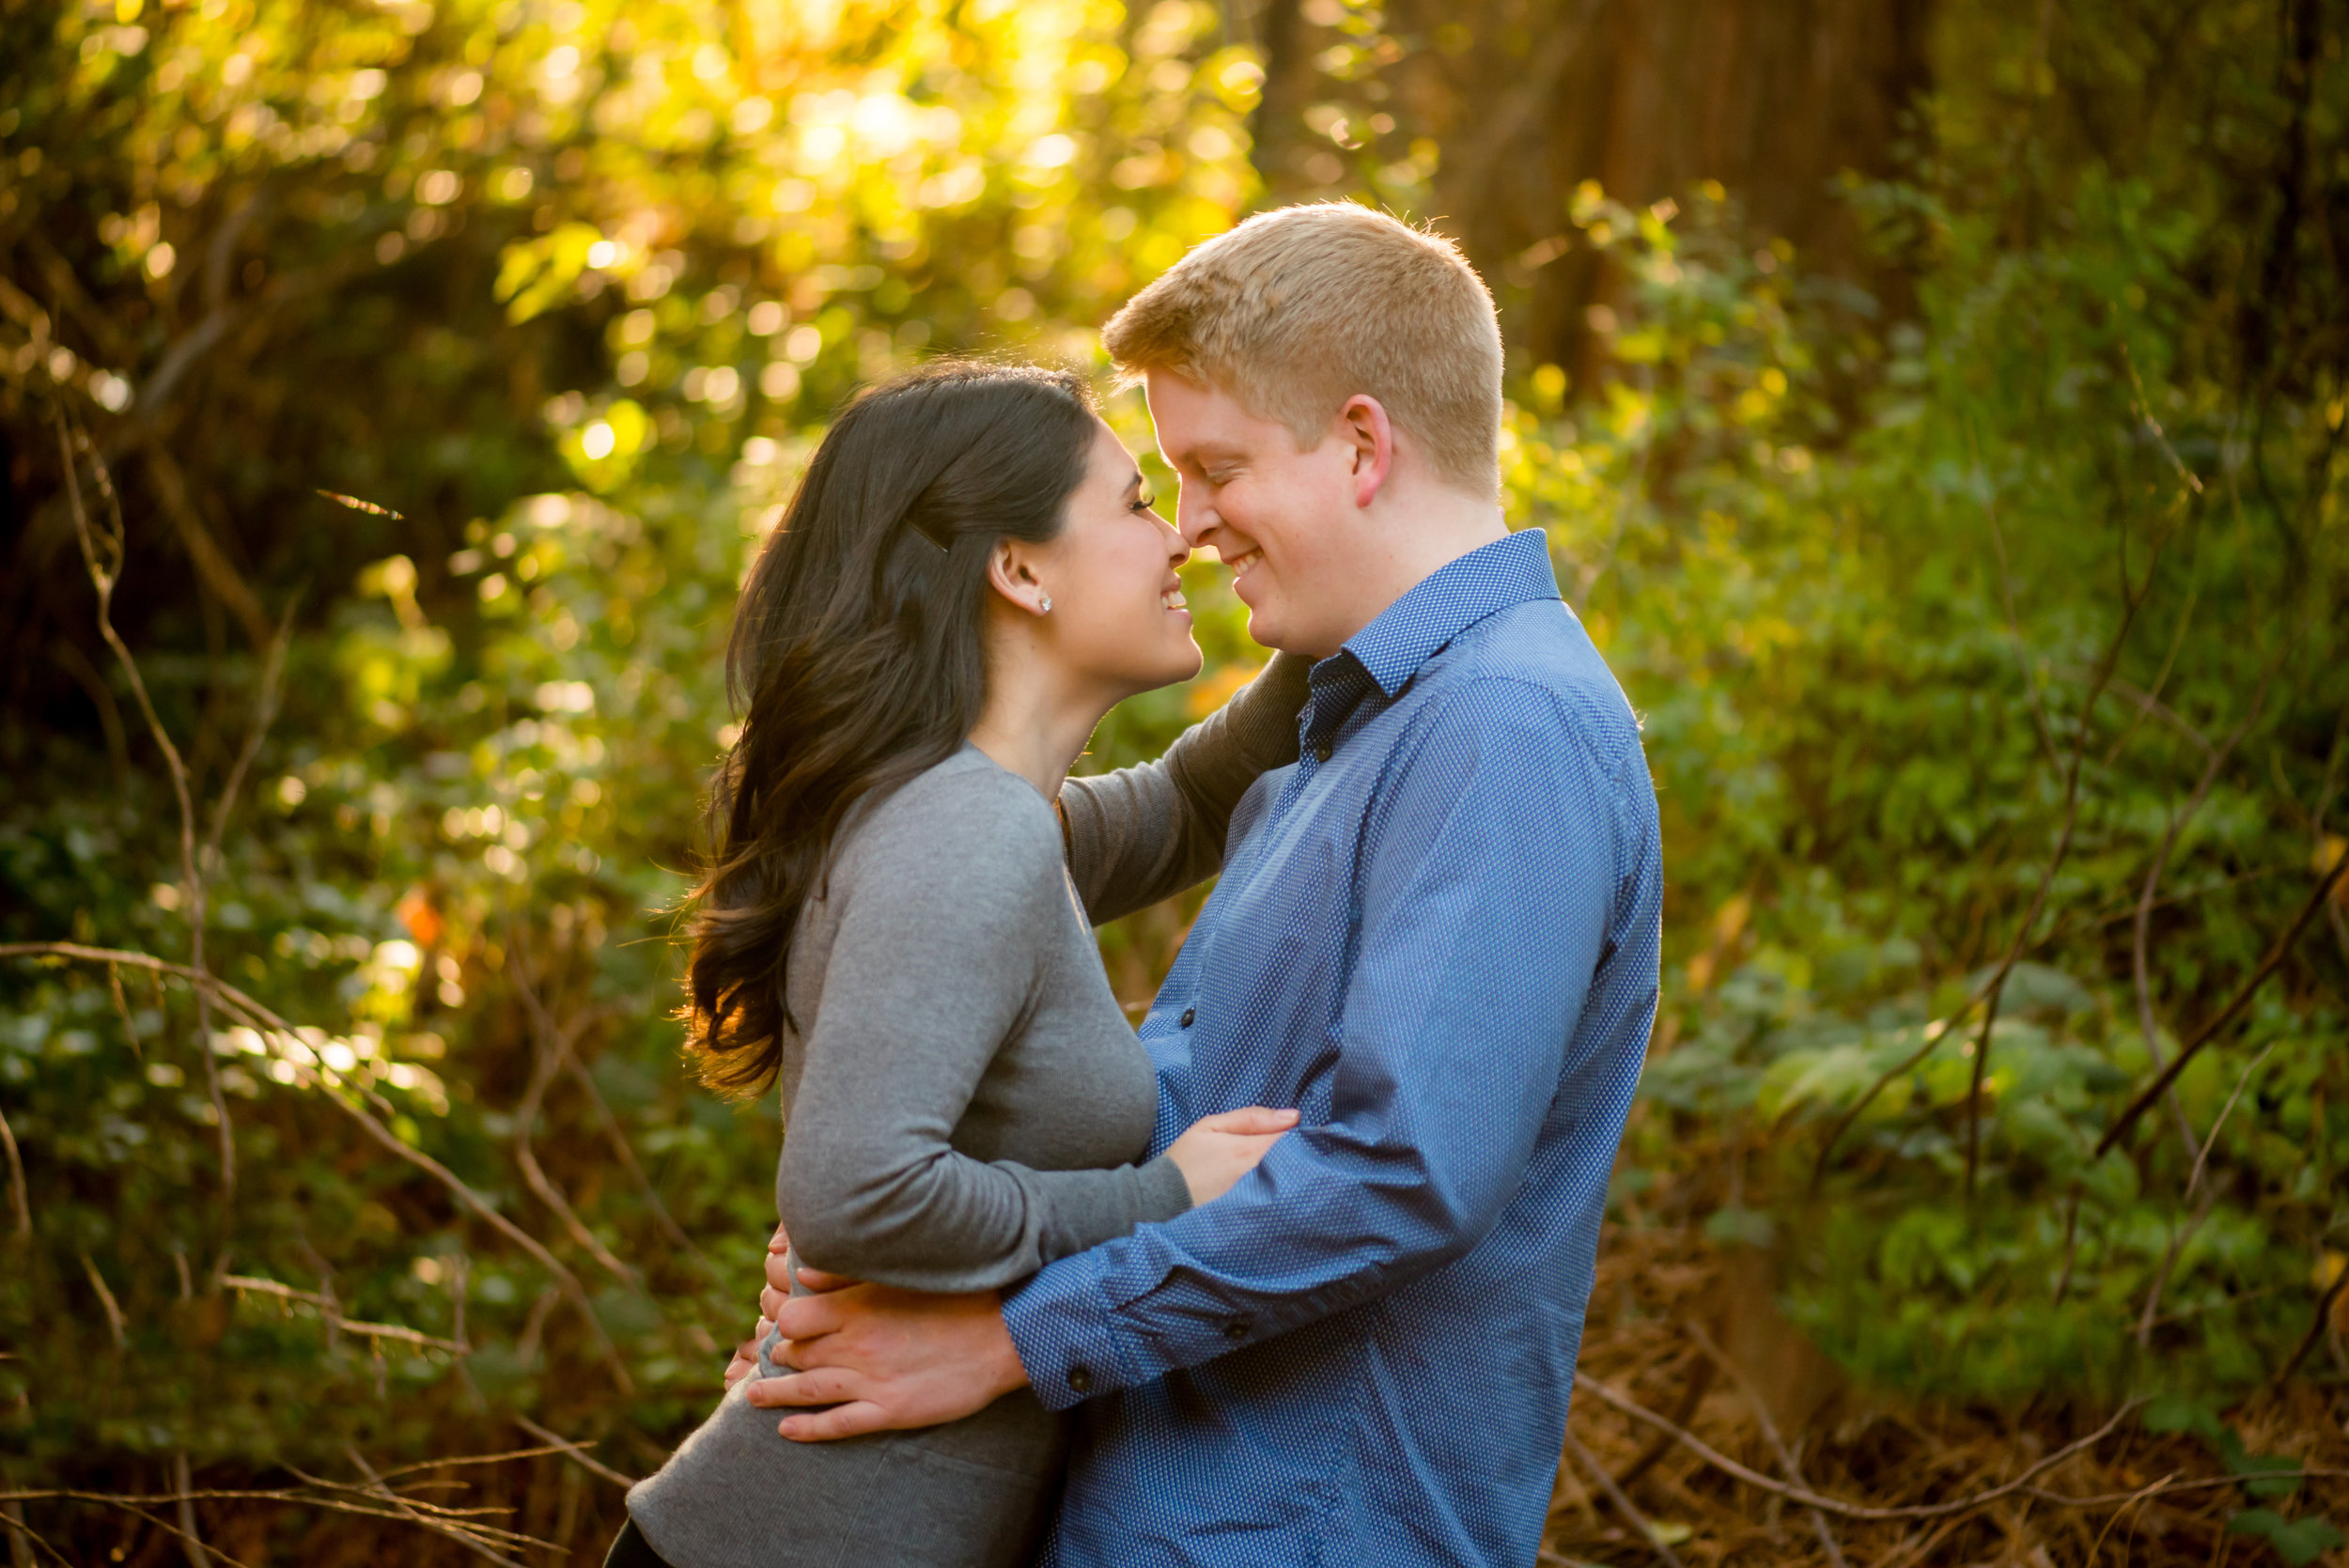 samantha-joel-006-apple-hill-engagement-photos-wedding-photographer-katherine-nicole-photography.JPG